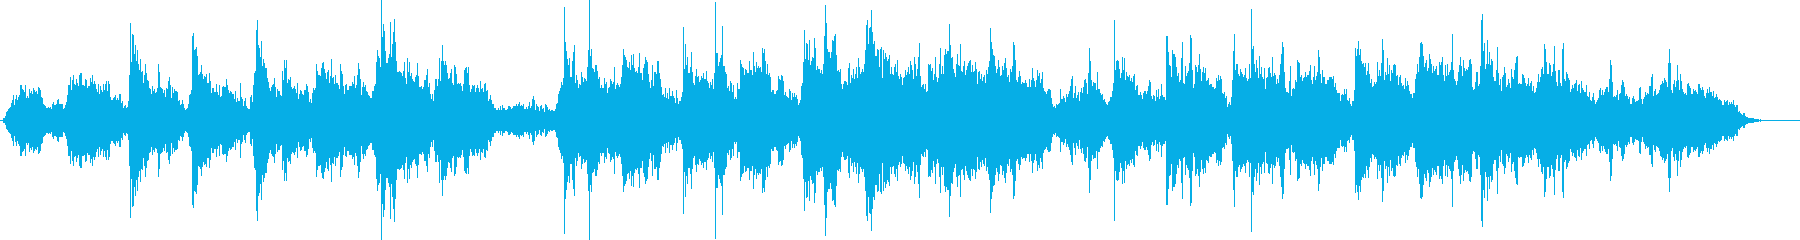 A very mysterious melody's reproduced waveform